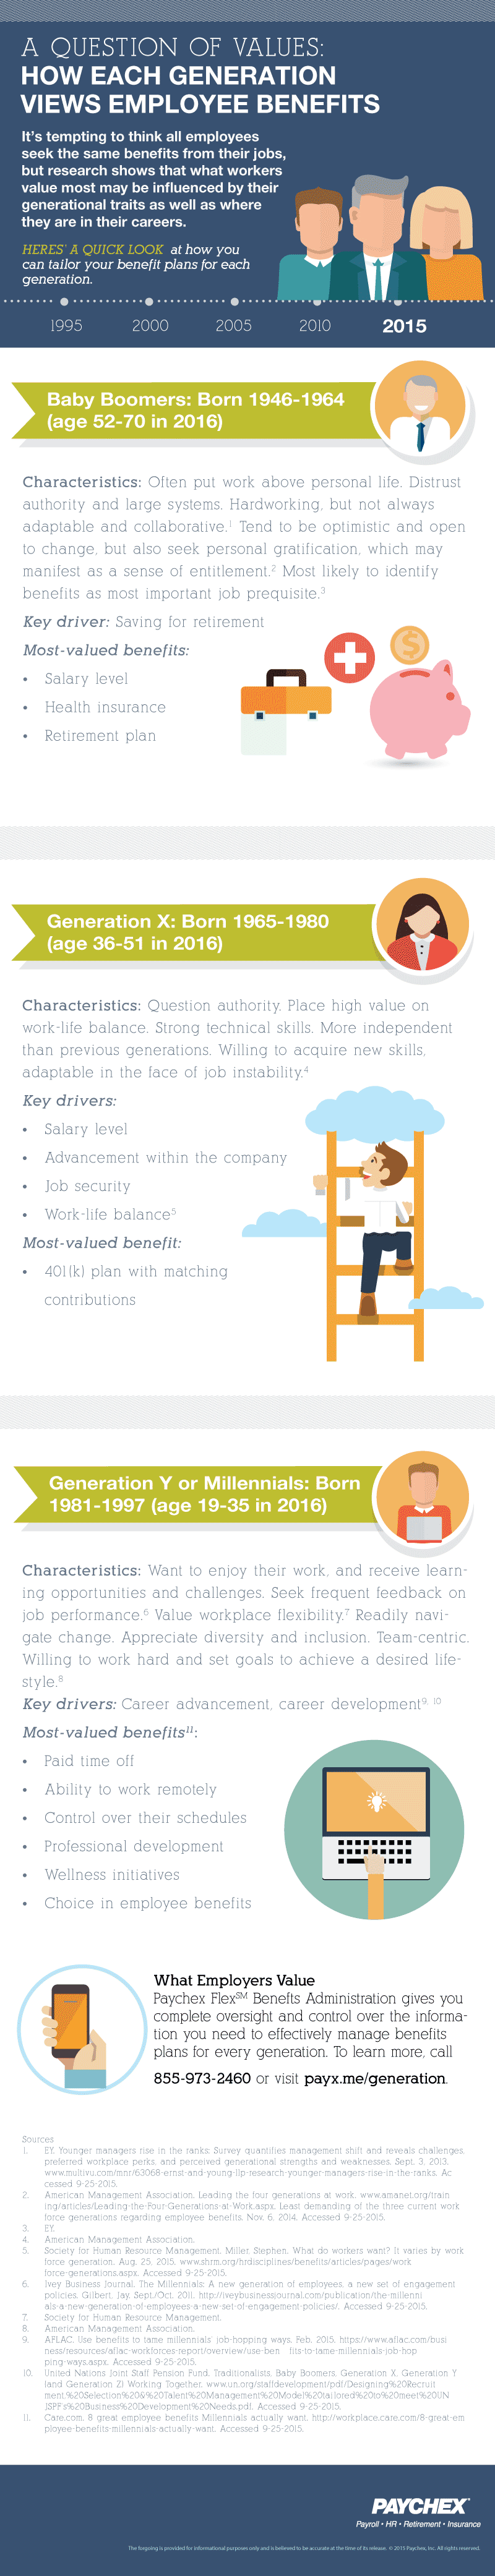 [Infographic] How Each Generation Views Employee Benefits